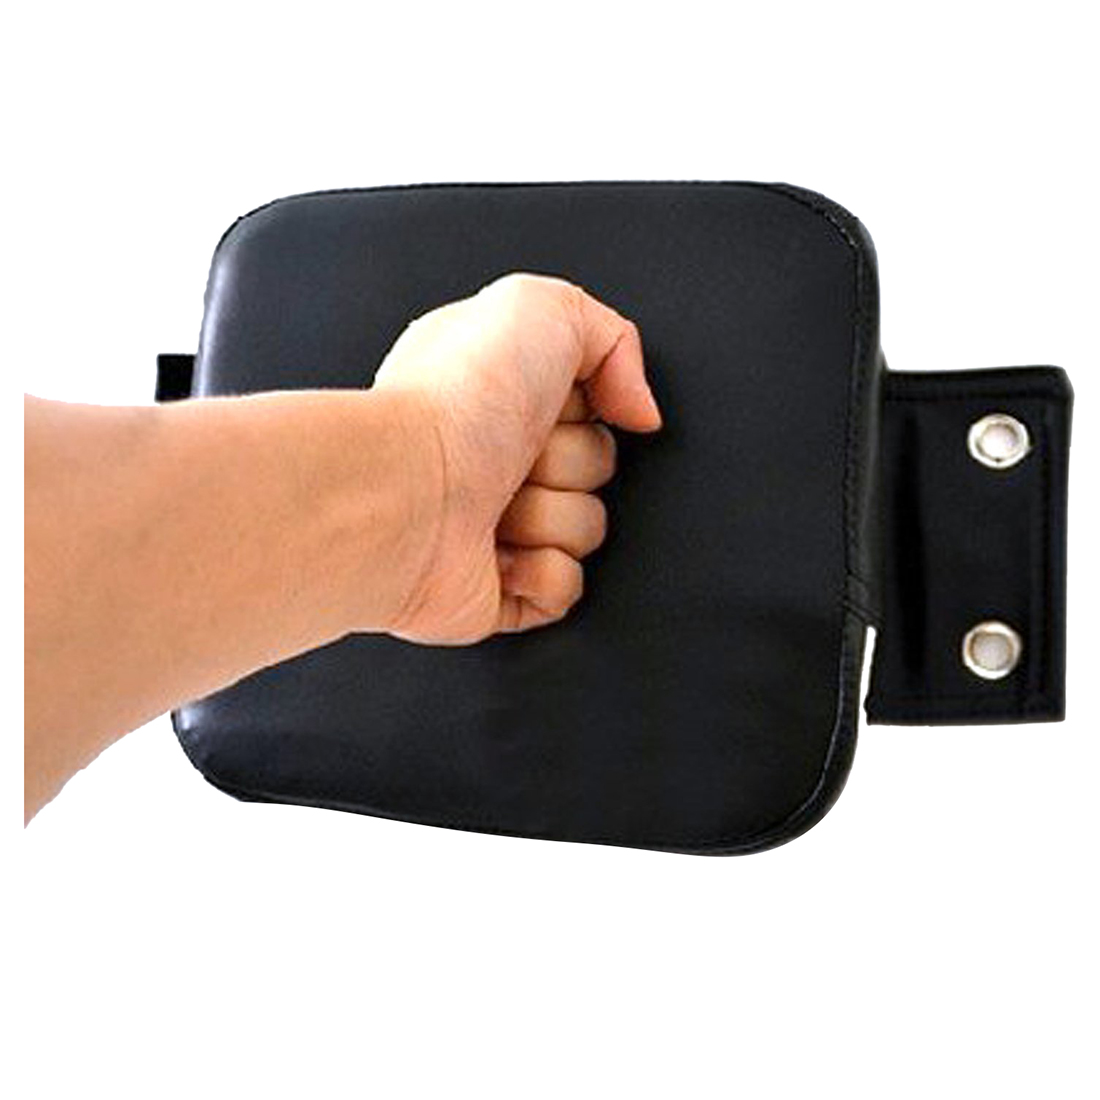 Punch Wall Focus Target Pad WING CHUN Boxing Fight Sanda Taekowndo Training Bag ...